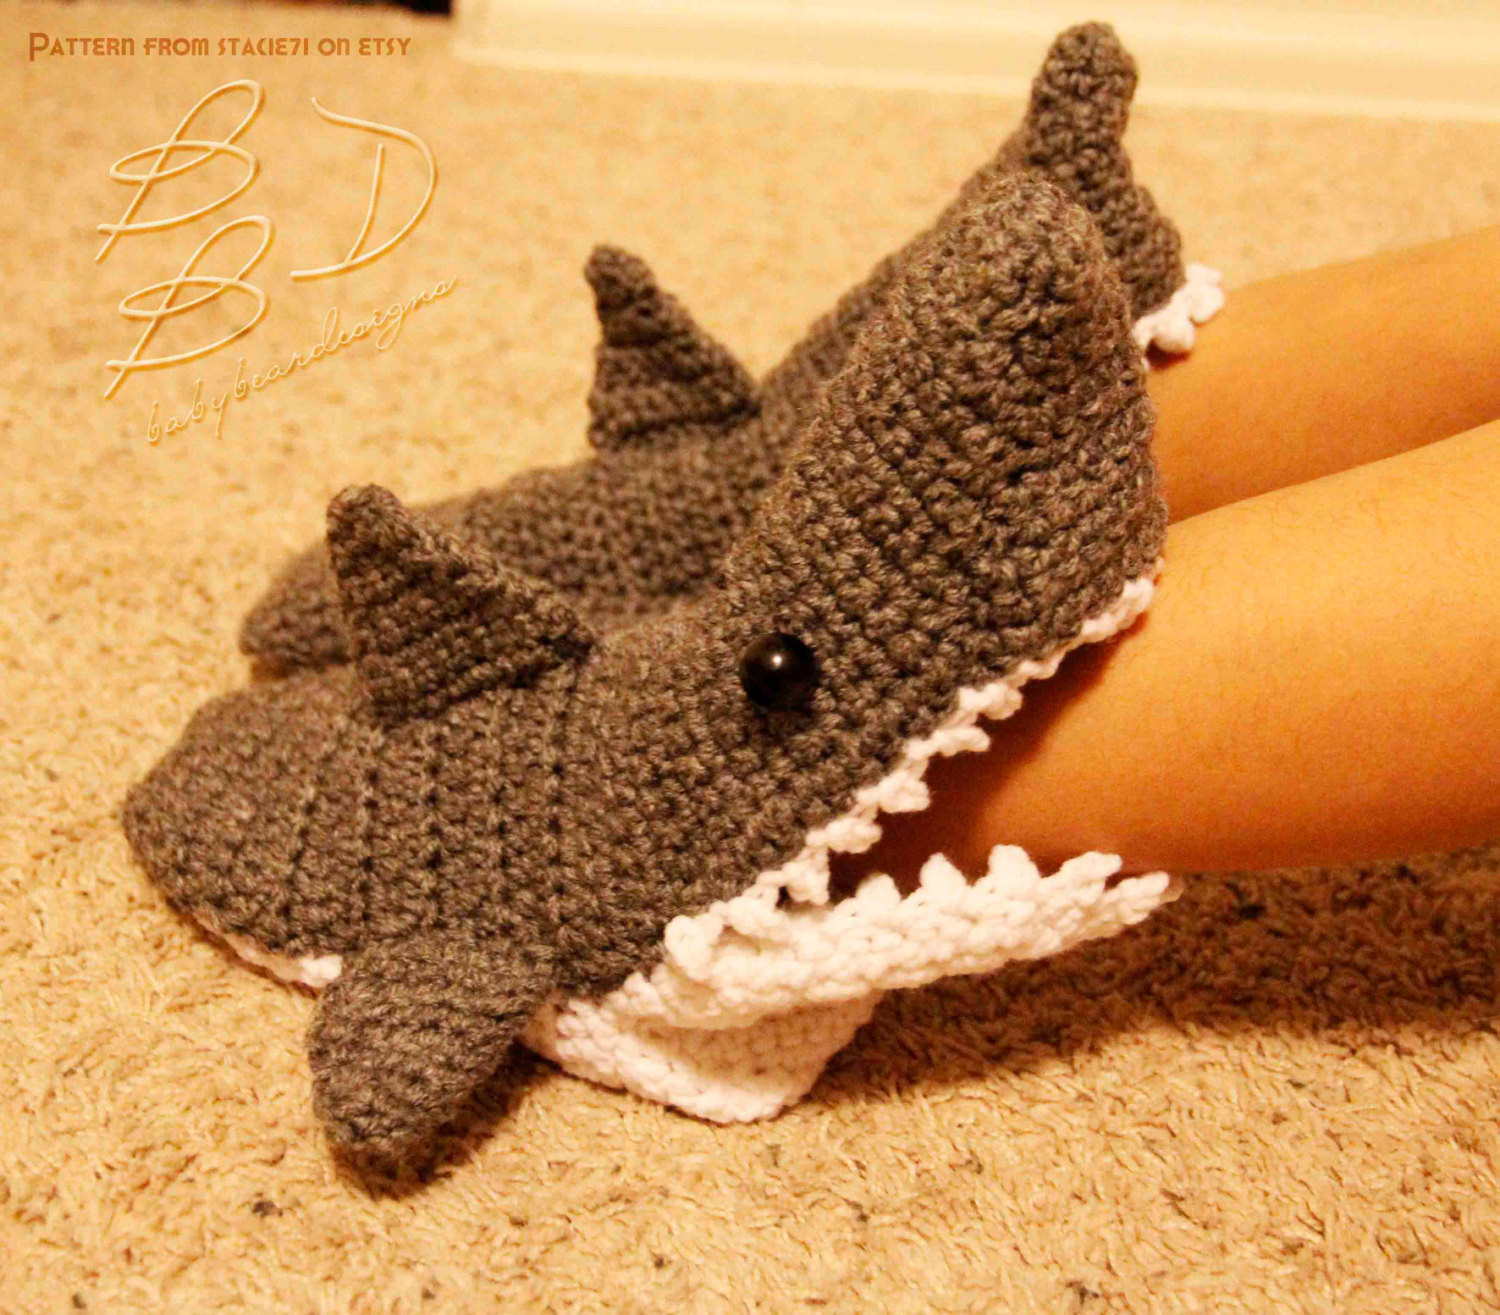 Crochet Slipper socks Luxury Crocheted Shark Slipper socks by Threebabybears On Etsy Of Charming 47 Photos Crochet Slipper socks